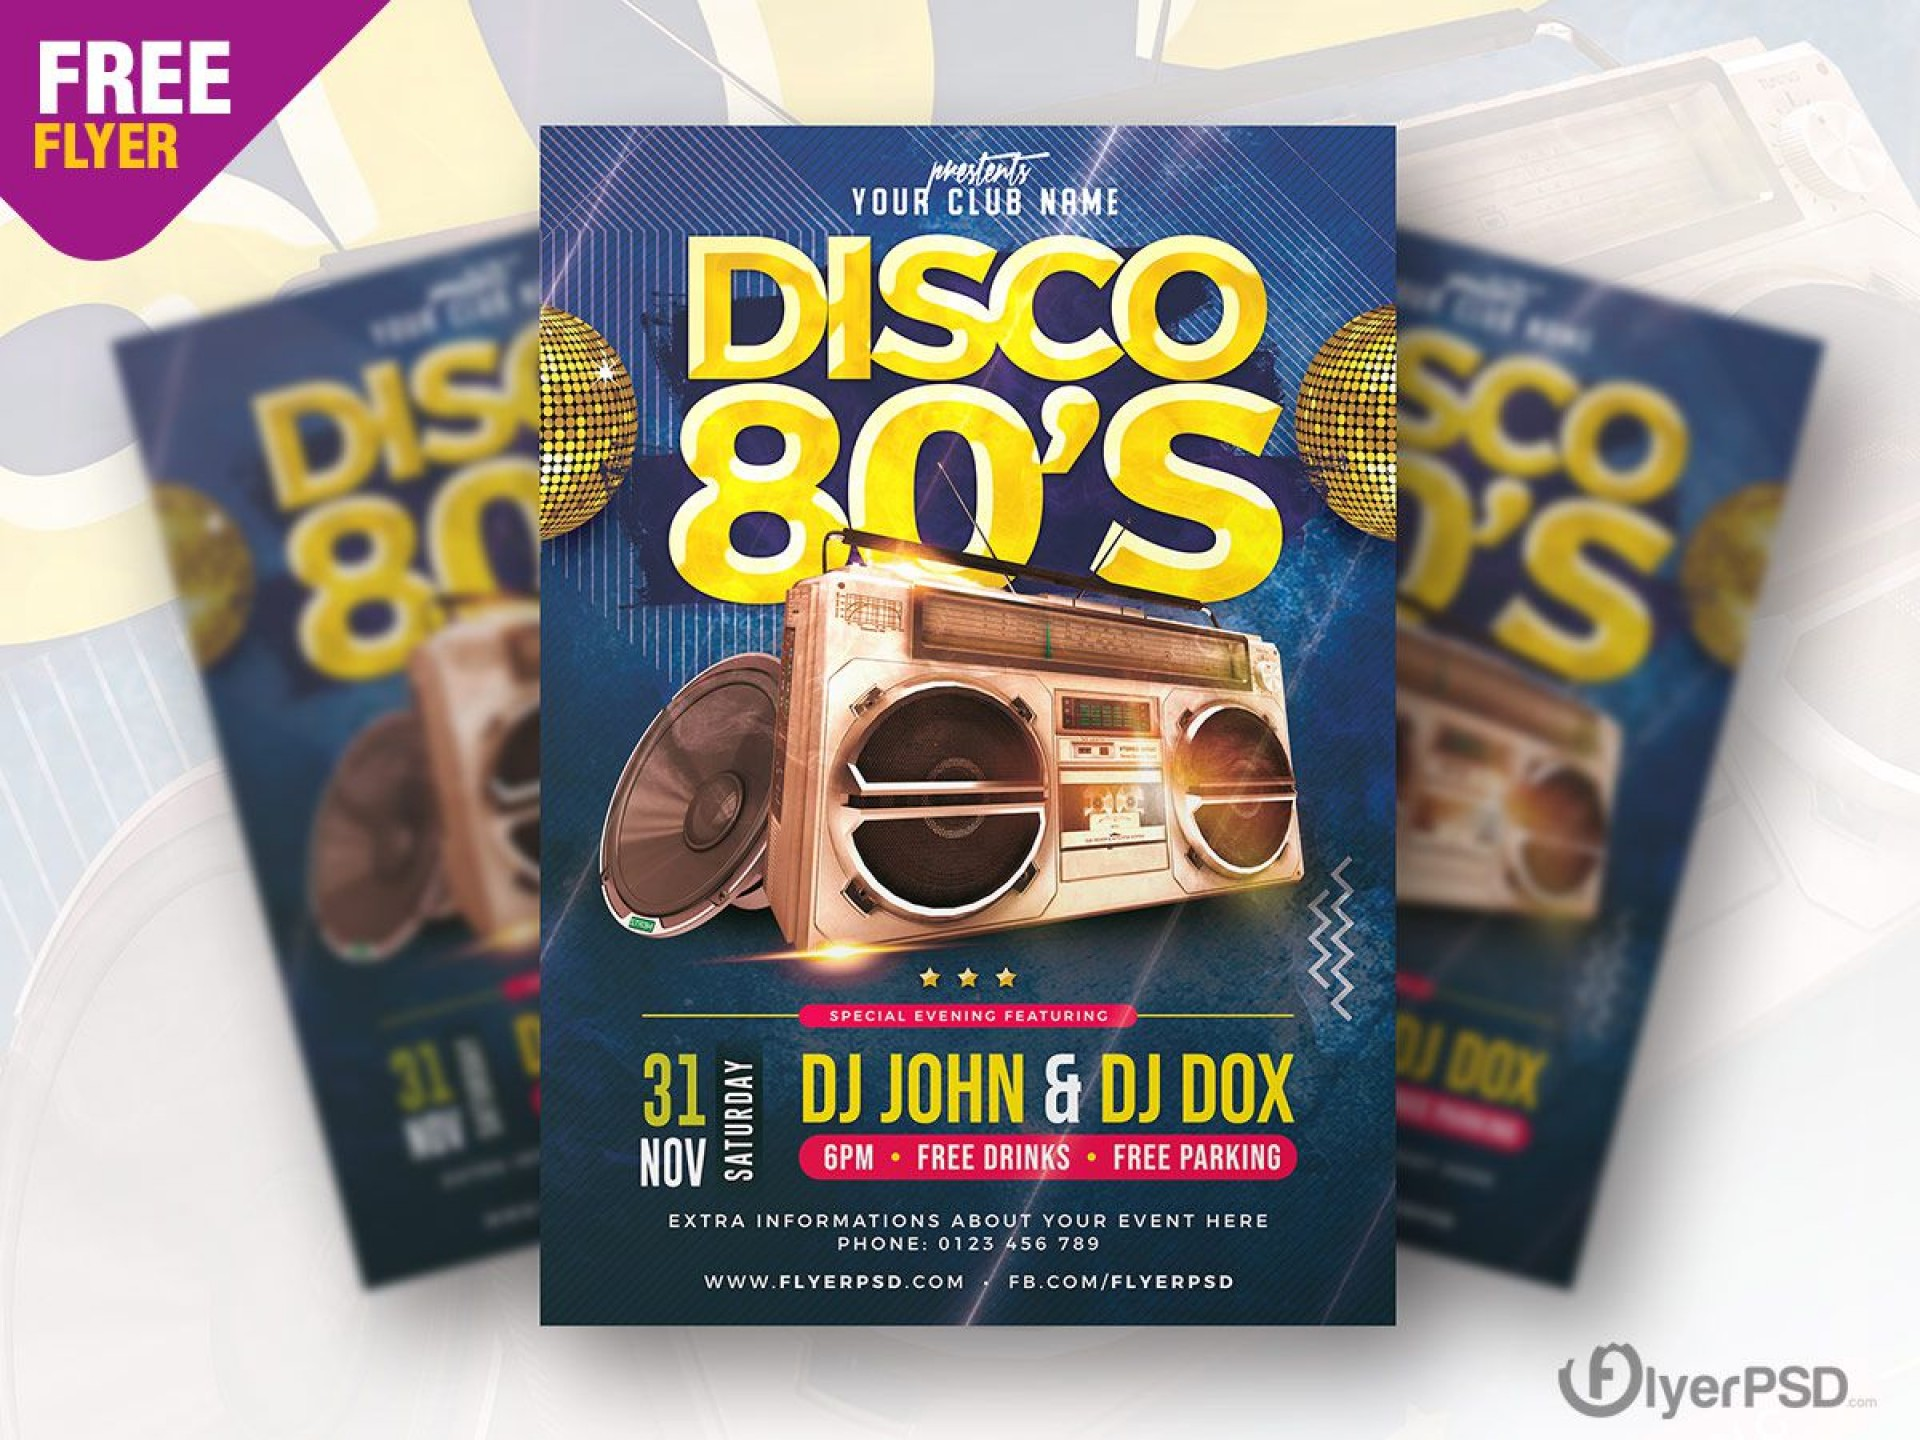 003 Archaicawful Free School Disco Flyer Template Inspiration  Templates Poster1920